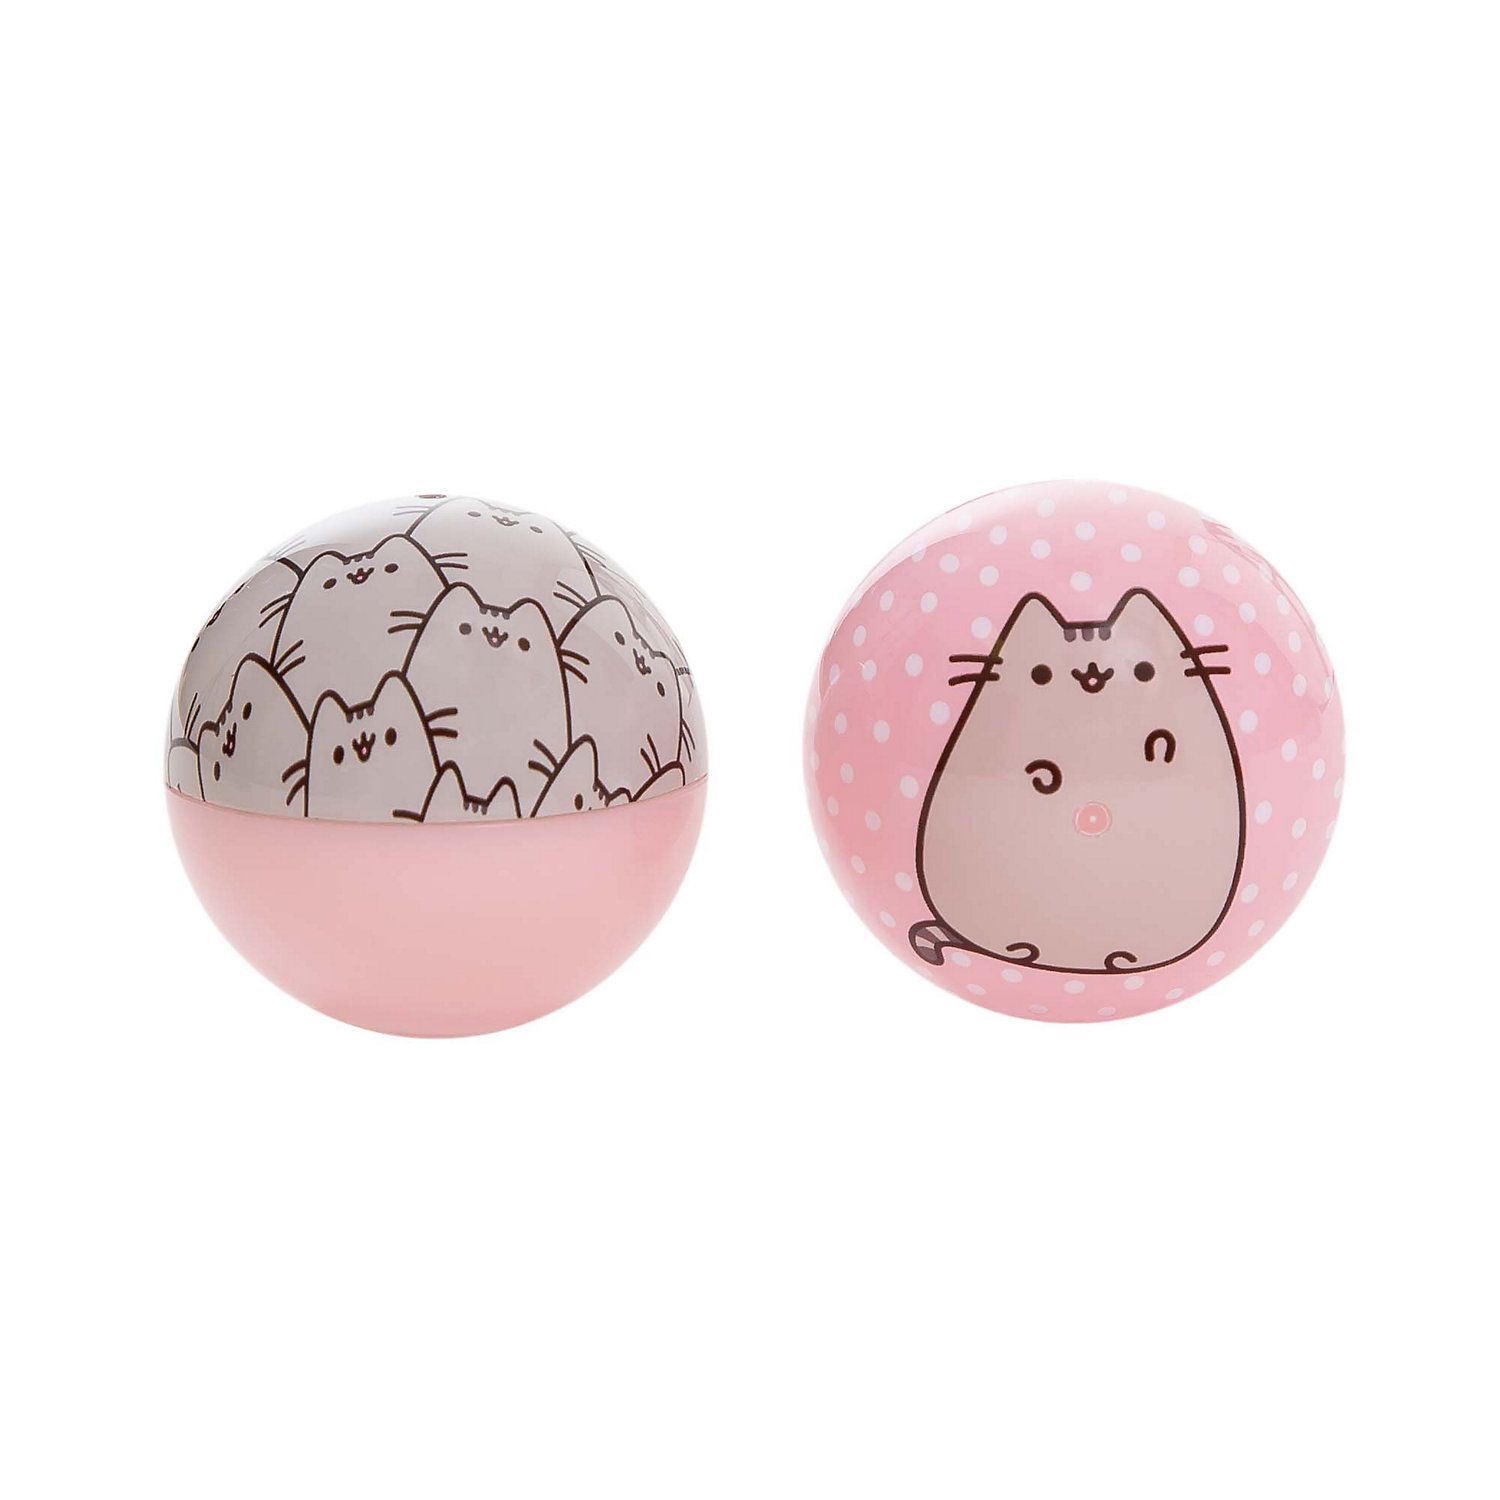 Pusheen Patterned Ball with Bell Cat Toy, 2 Pack